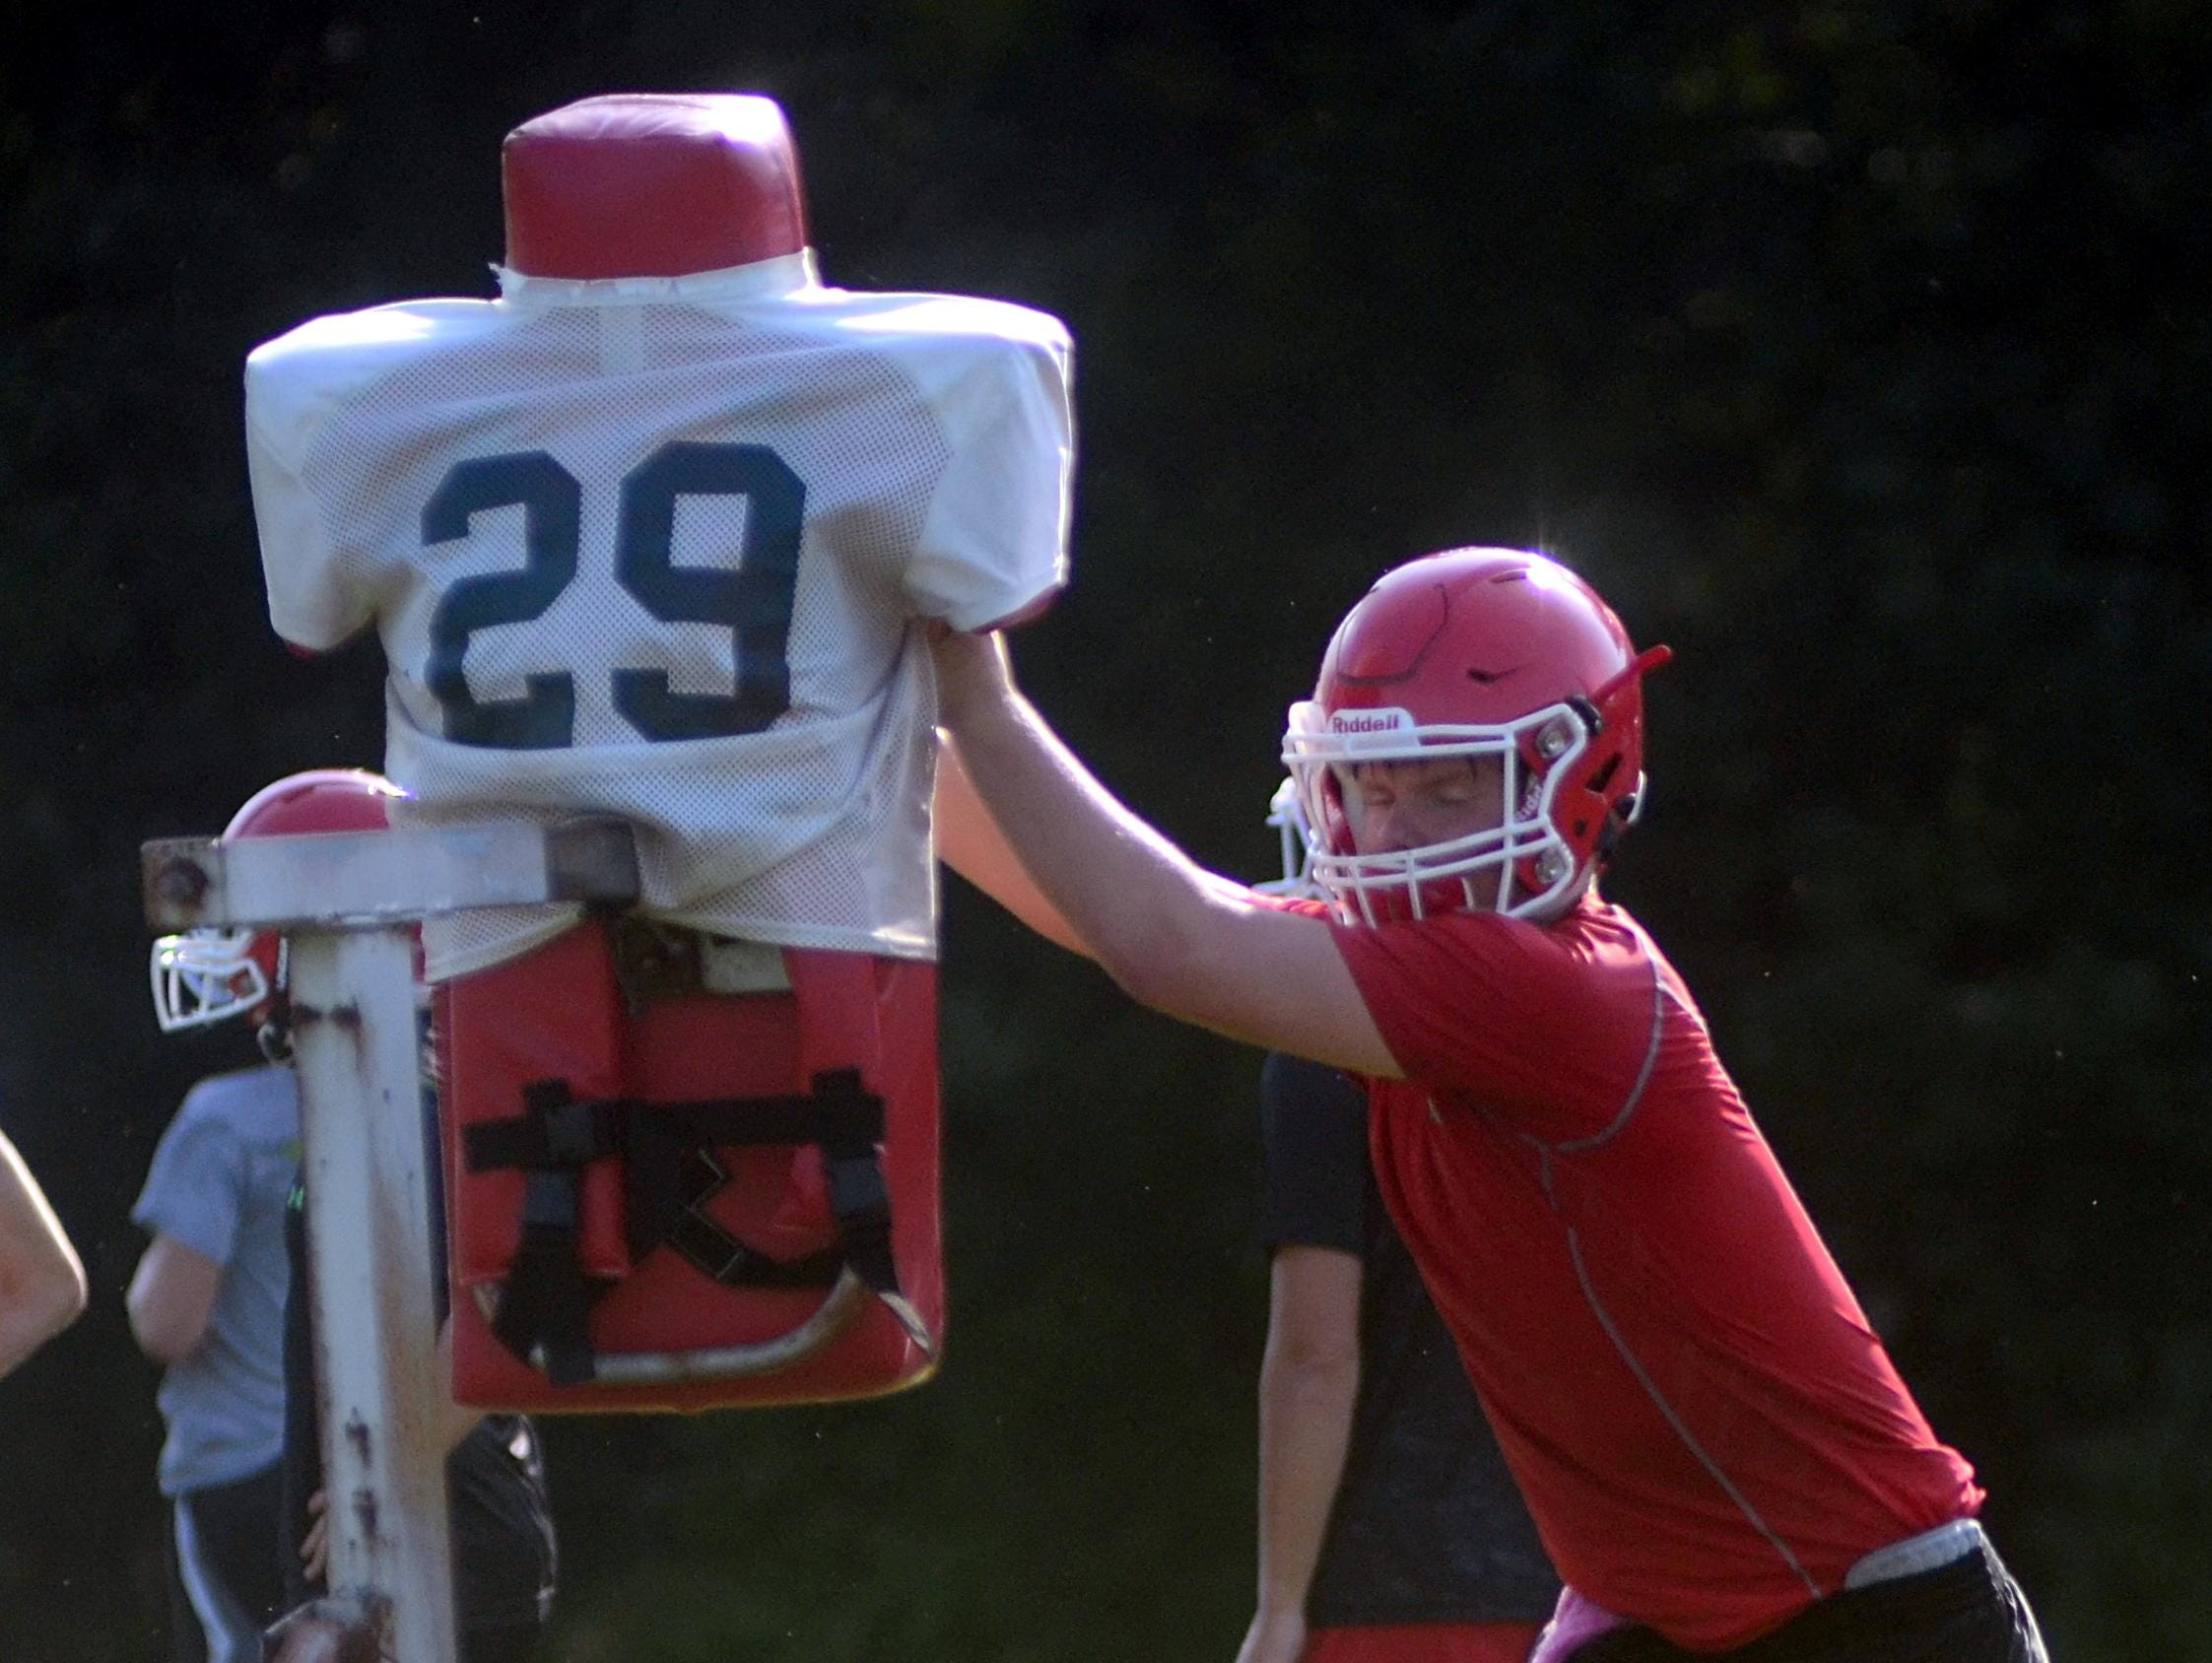 Westmoreland junior Blake Carter works with a blocking dummy during a preseason practice session.